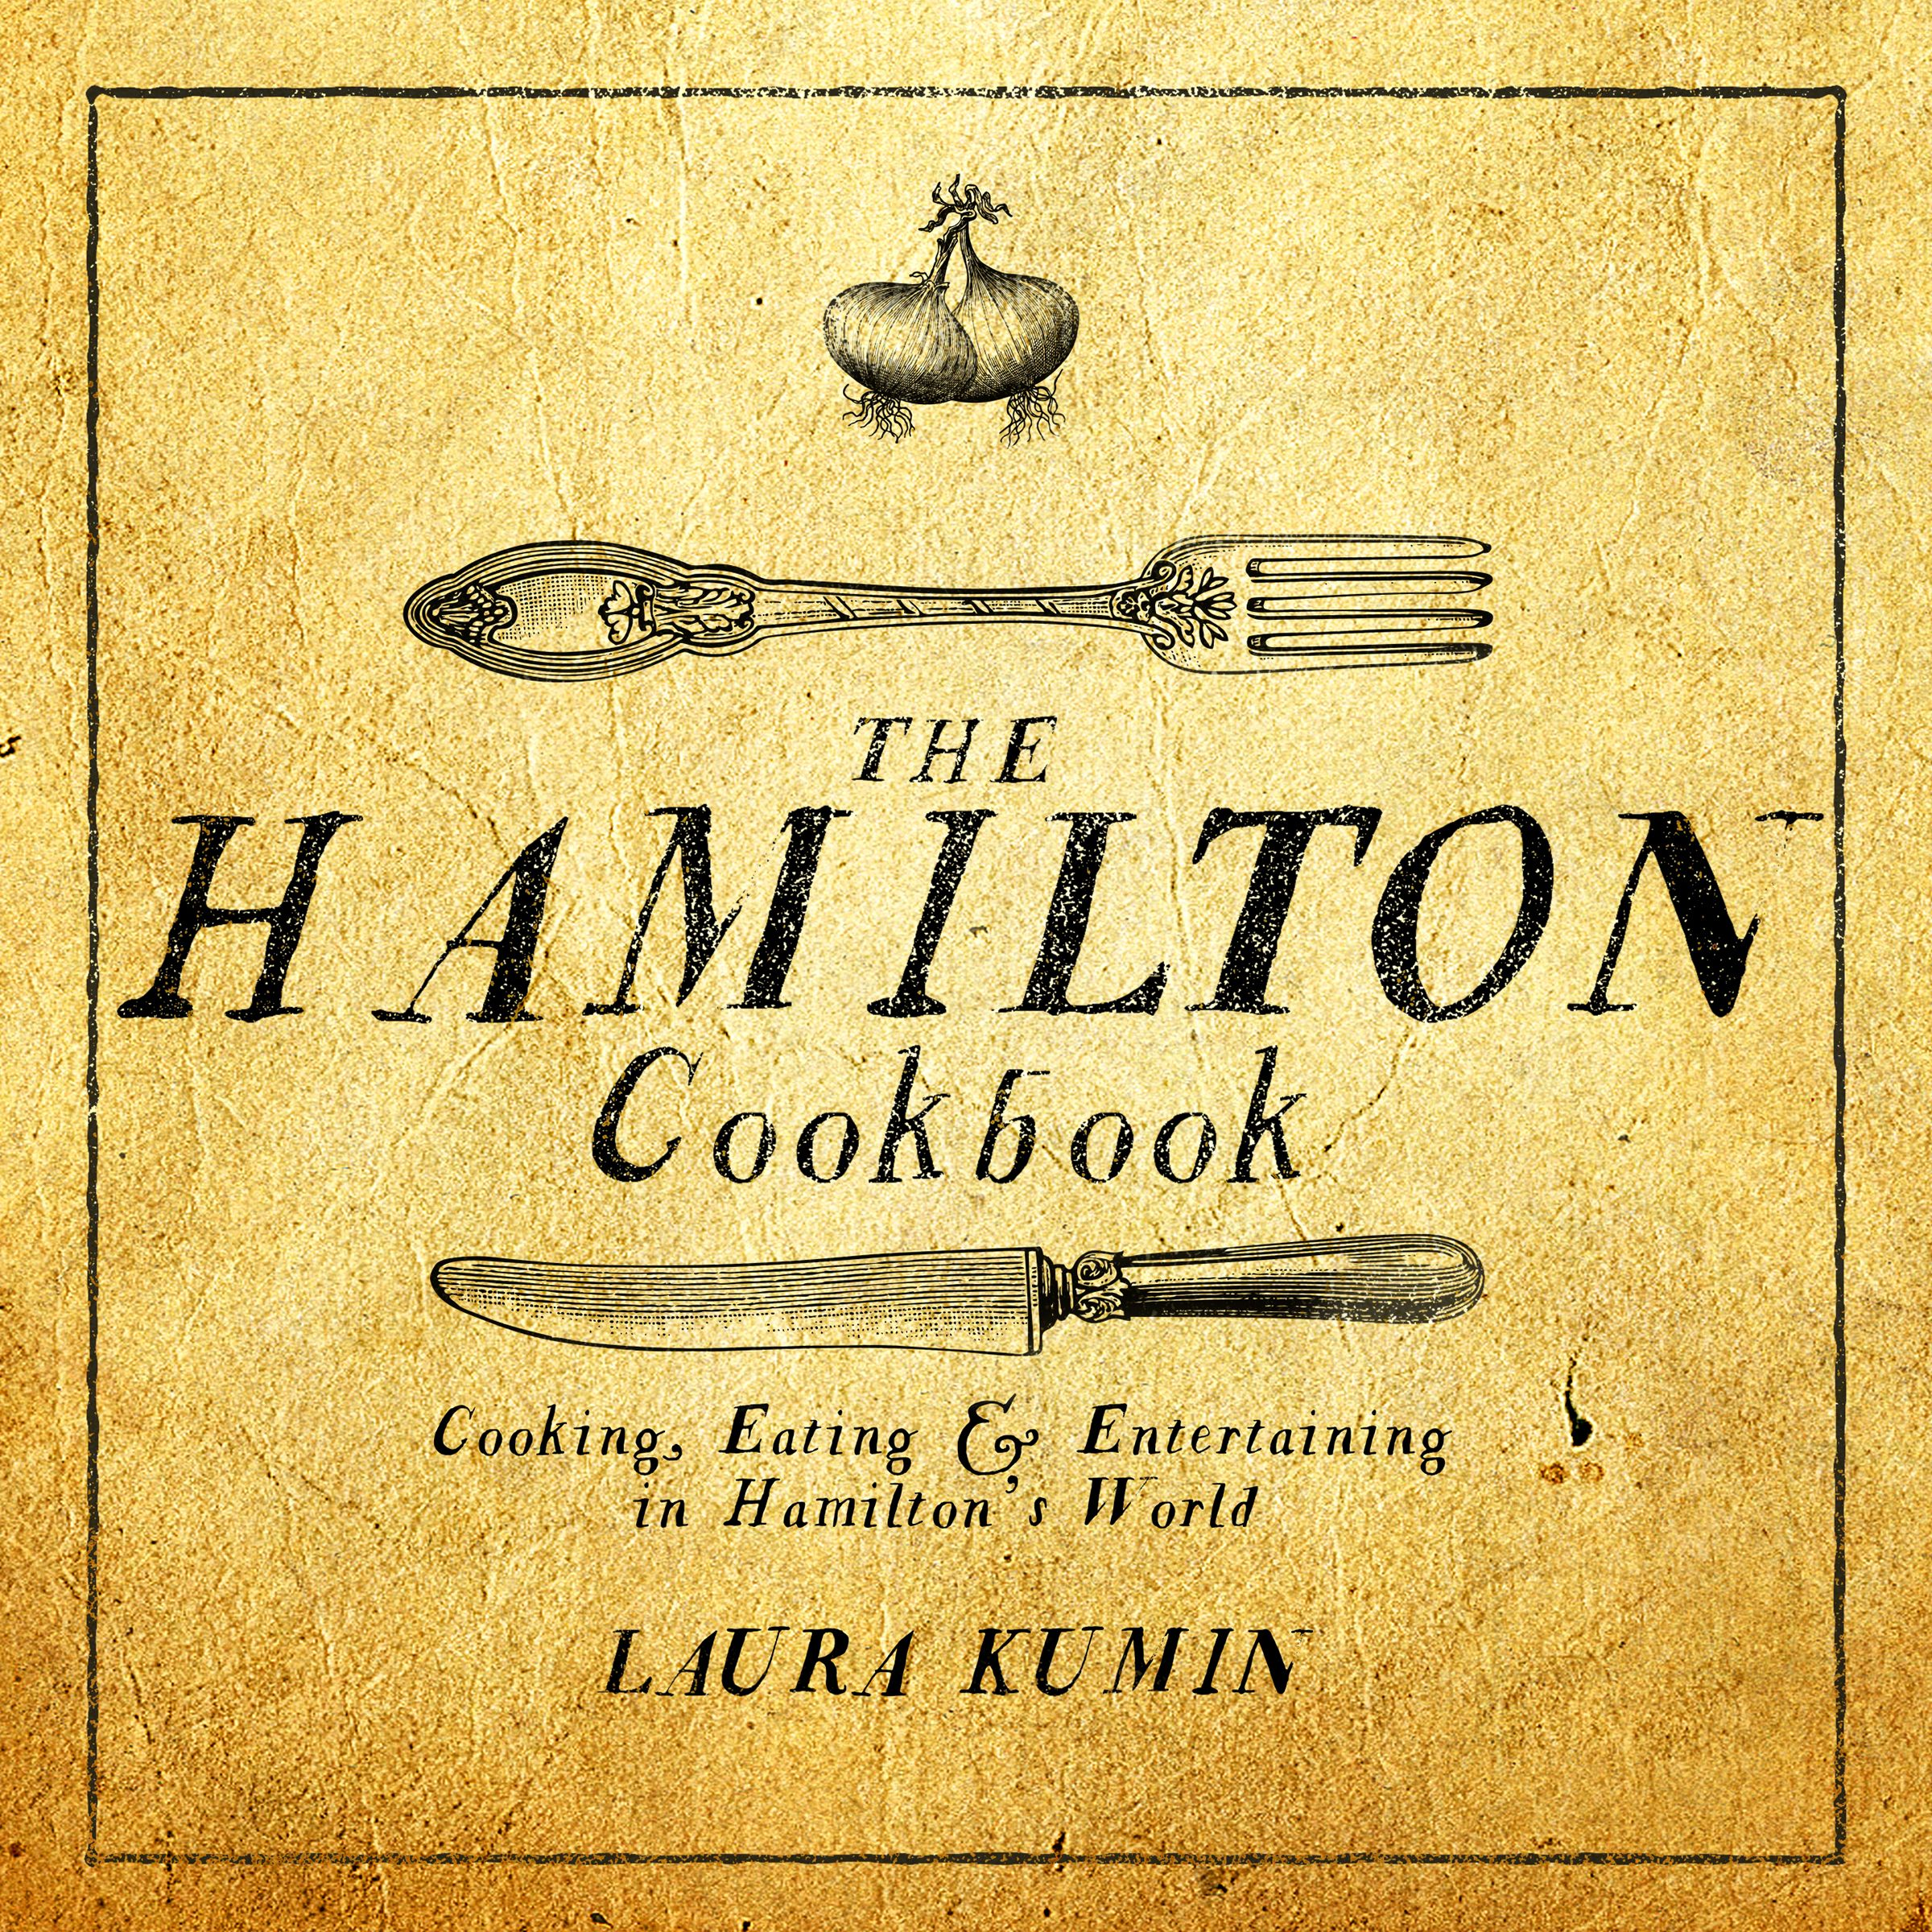 The Hamilton Cookbook: Cooking, Eating & Entertaining in Hamilton's World